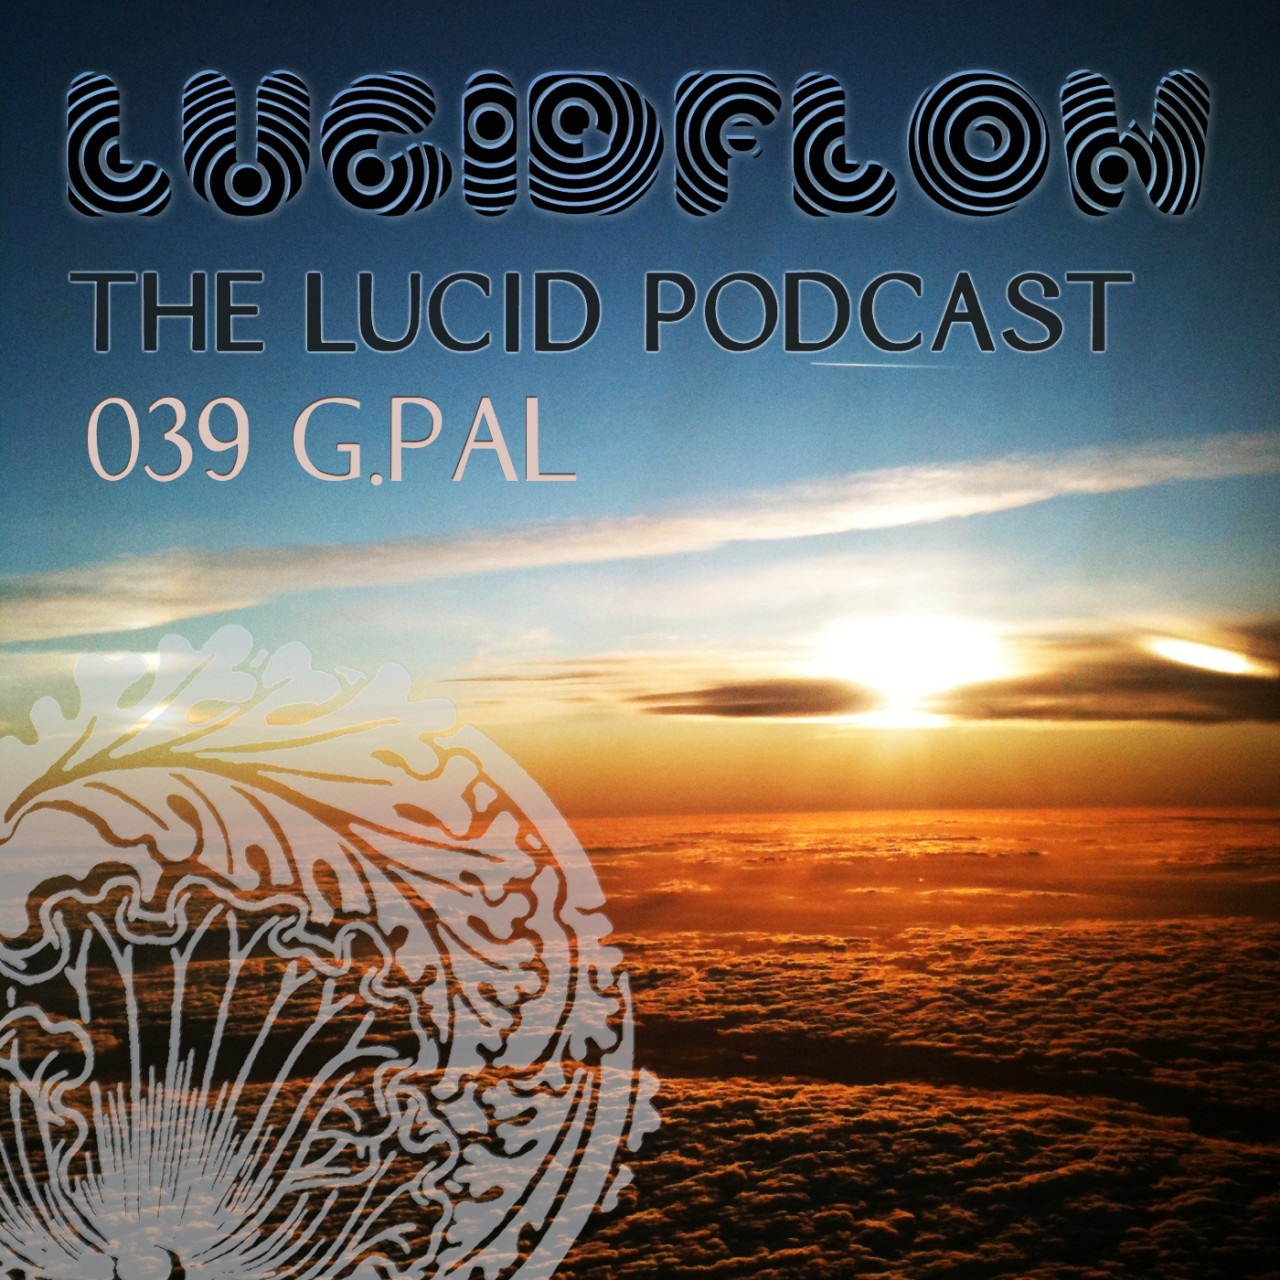 The Lucid Podcast: 039 G.Pal